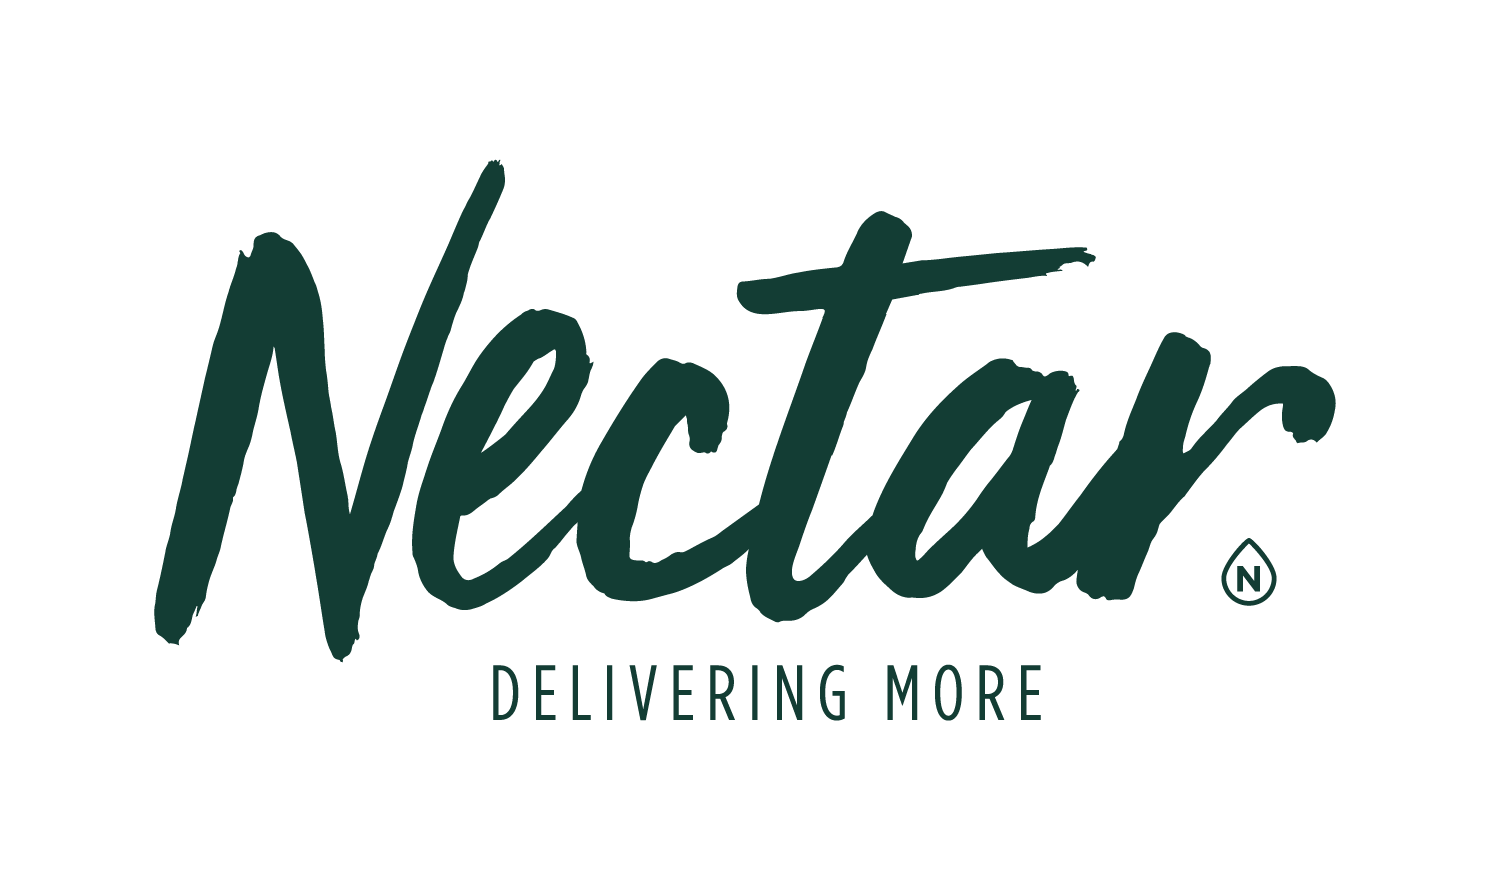 Nectar_Delivering More_P576-01.png